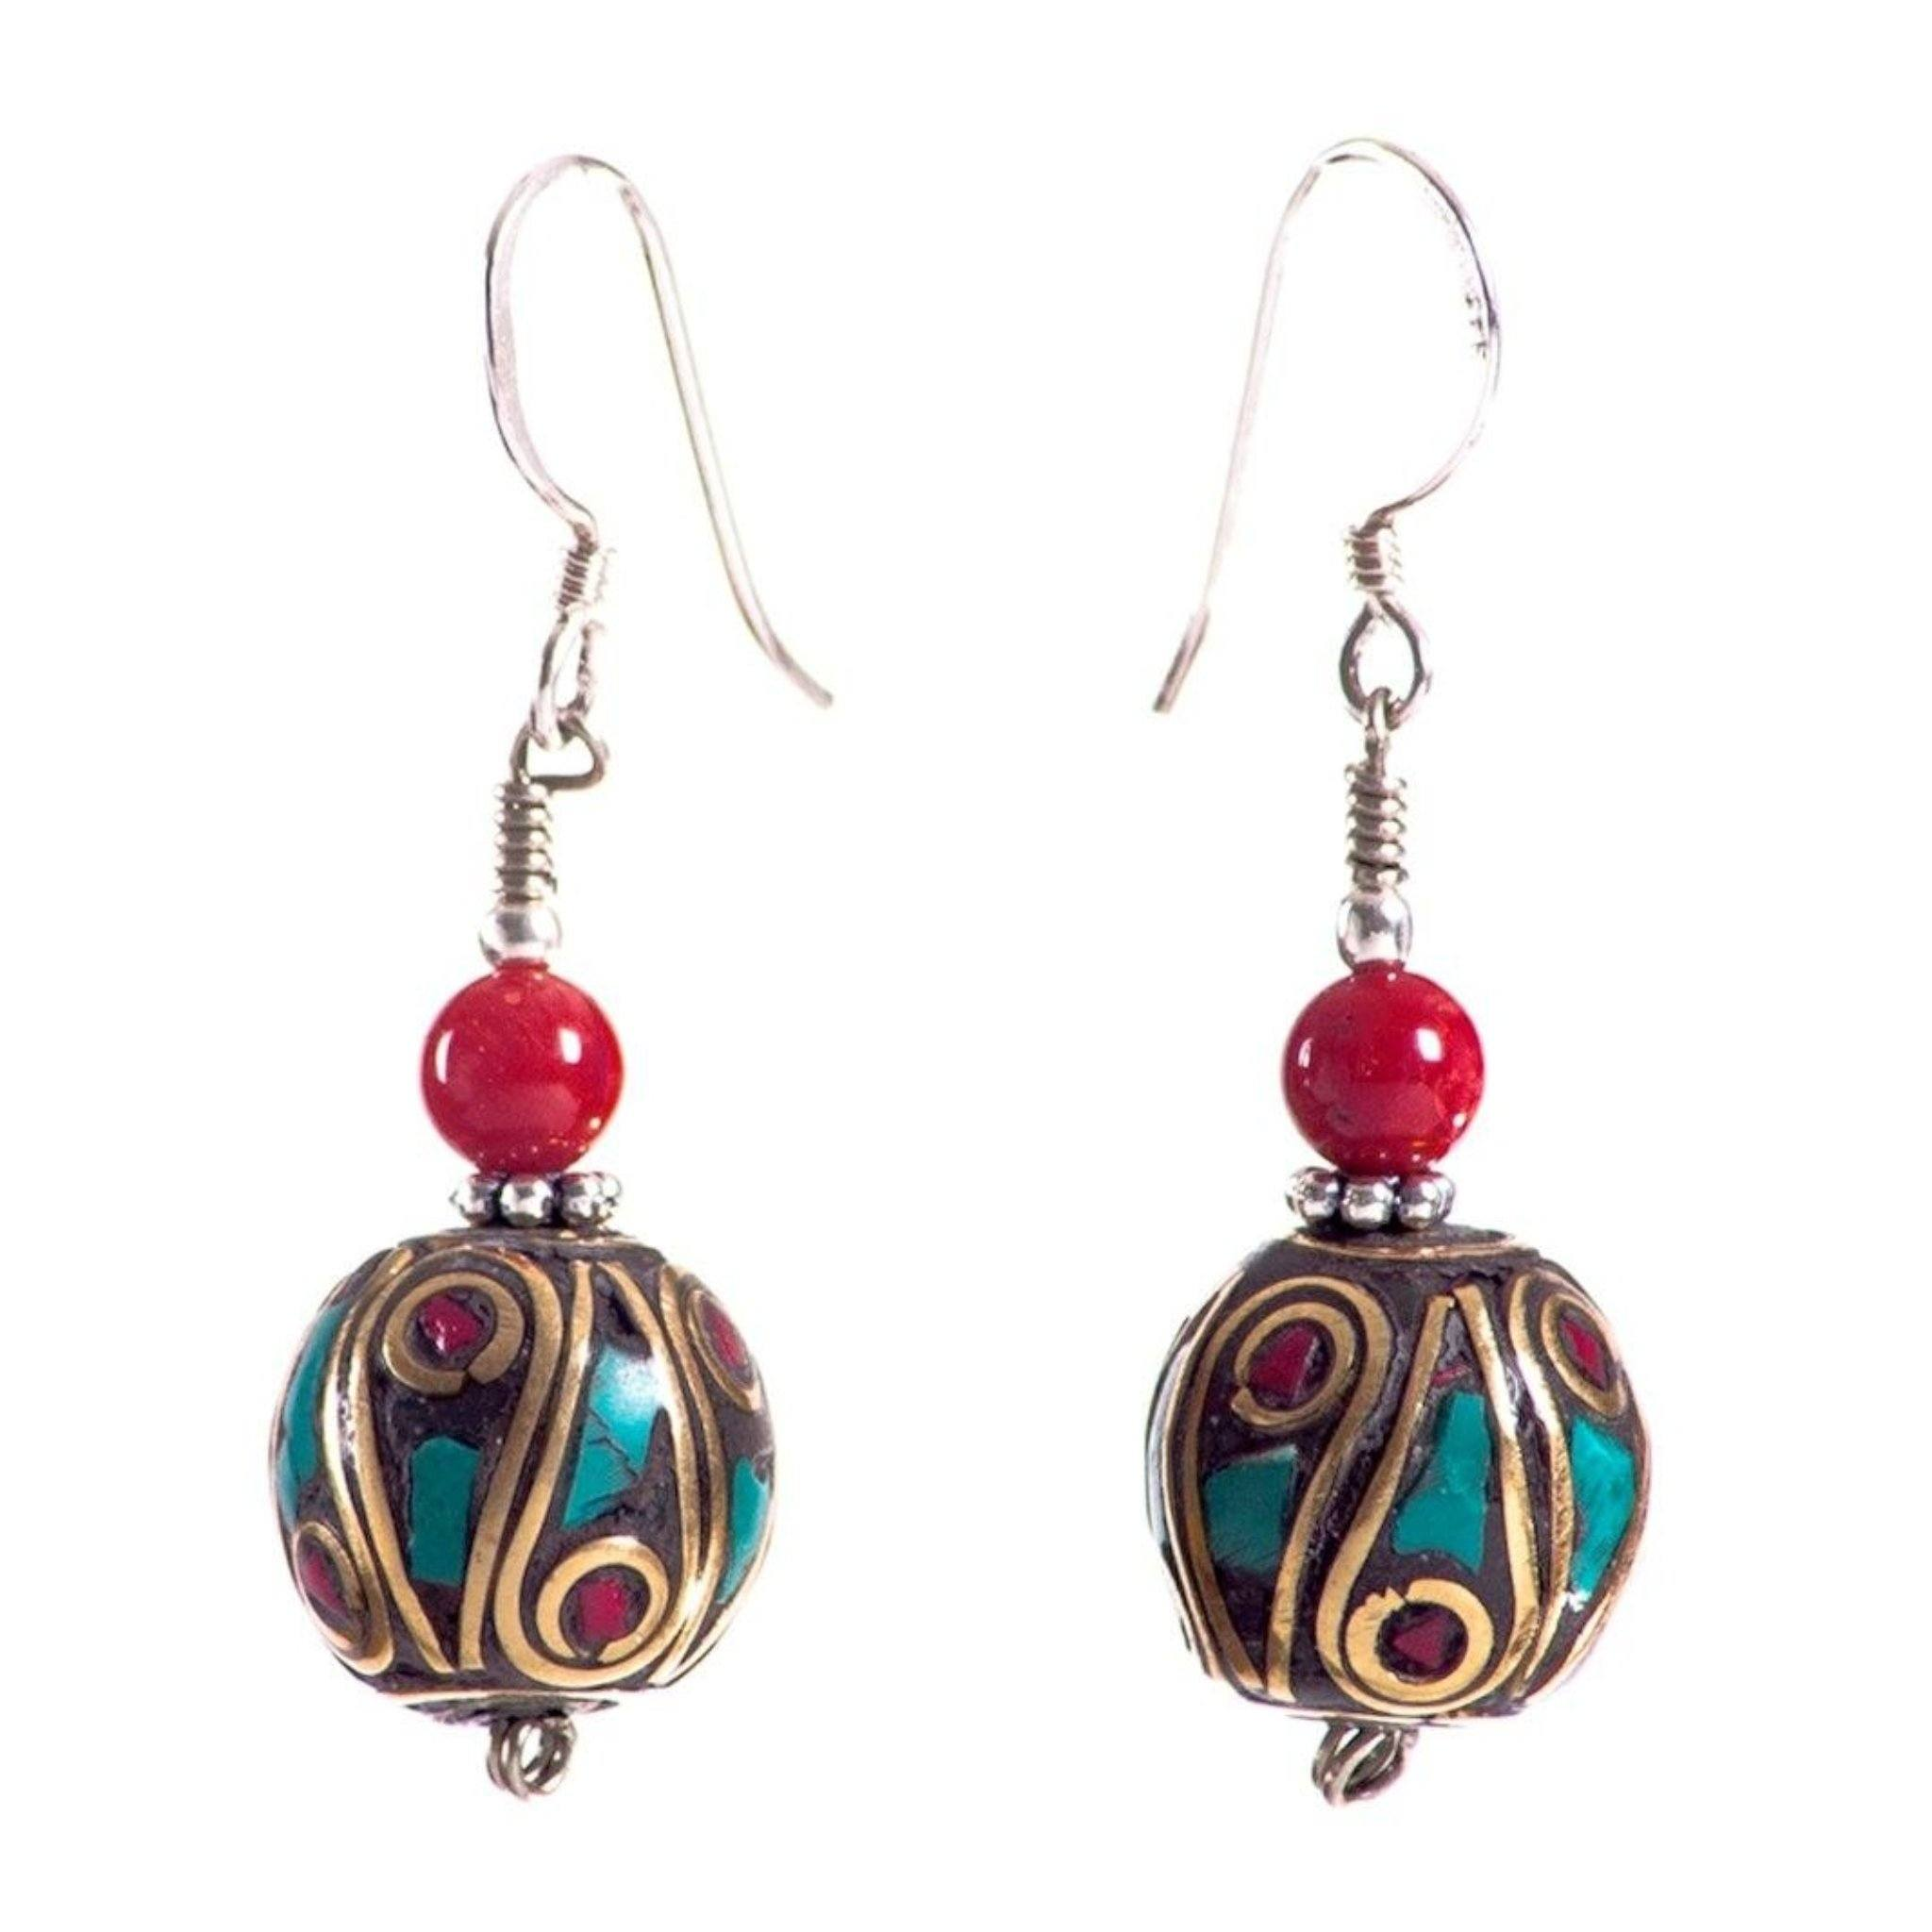 Round Inlay Turquoise Red Earrings Tibet Craft Corner